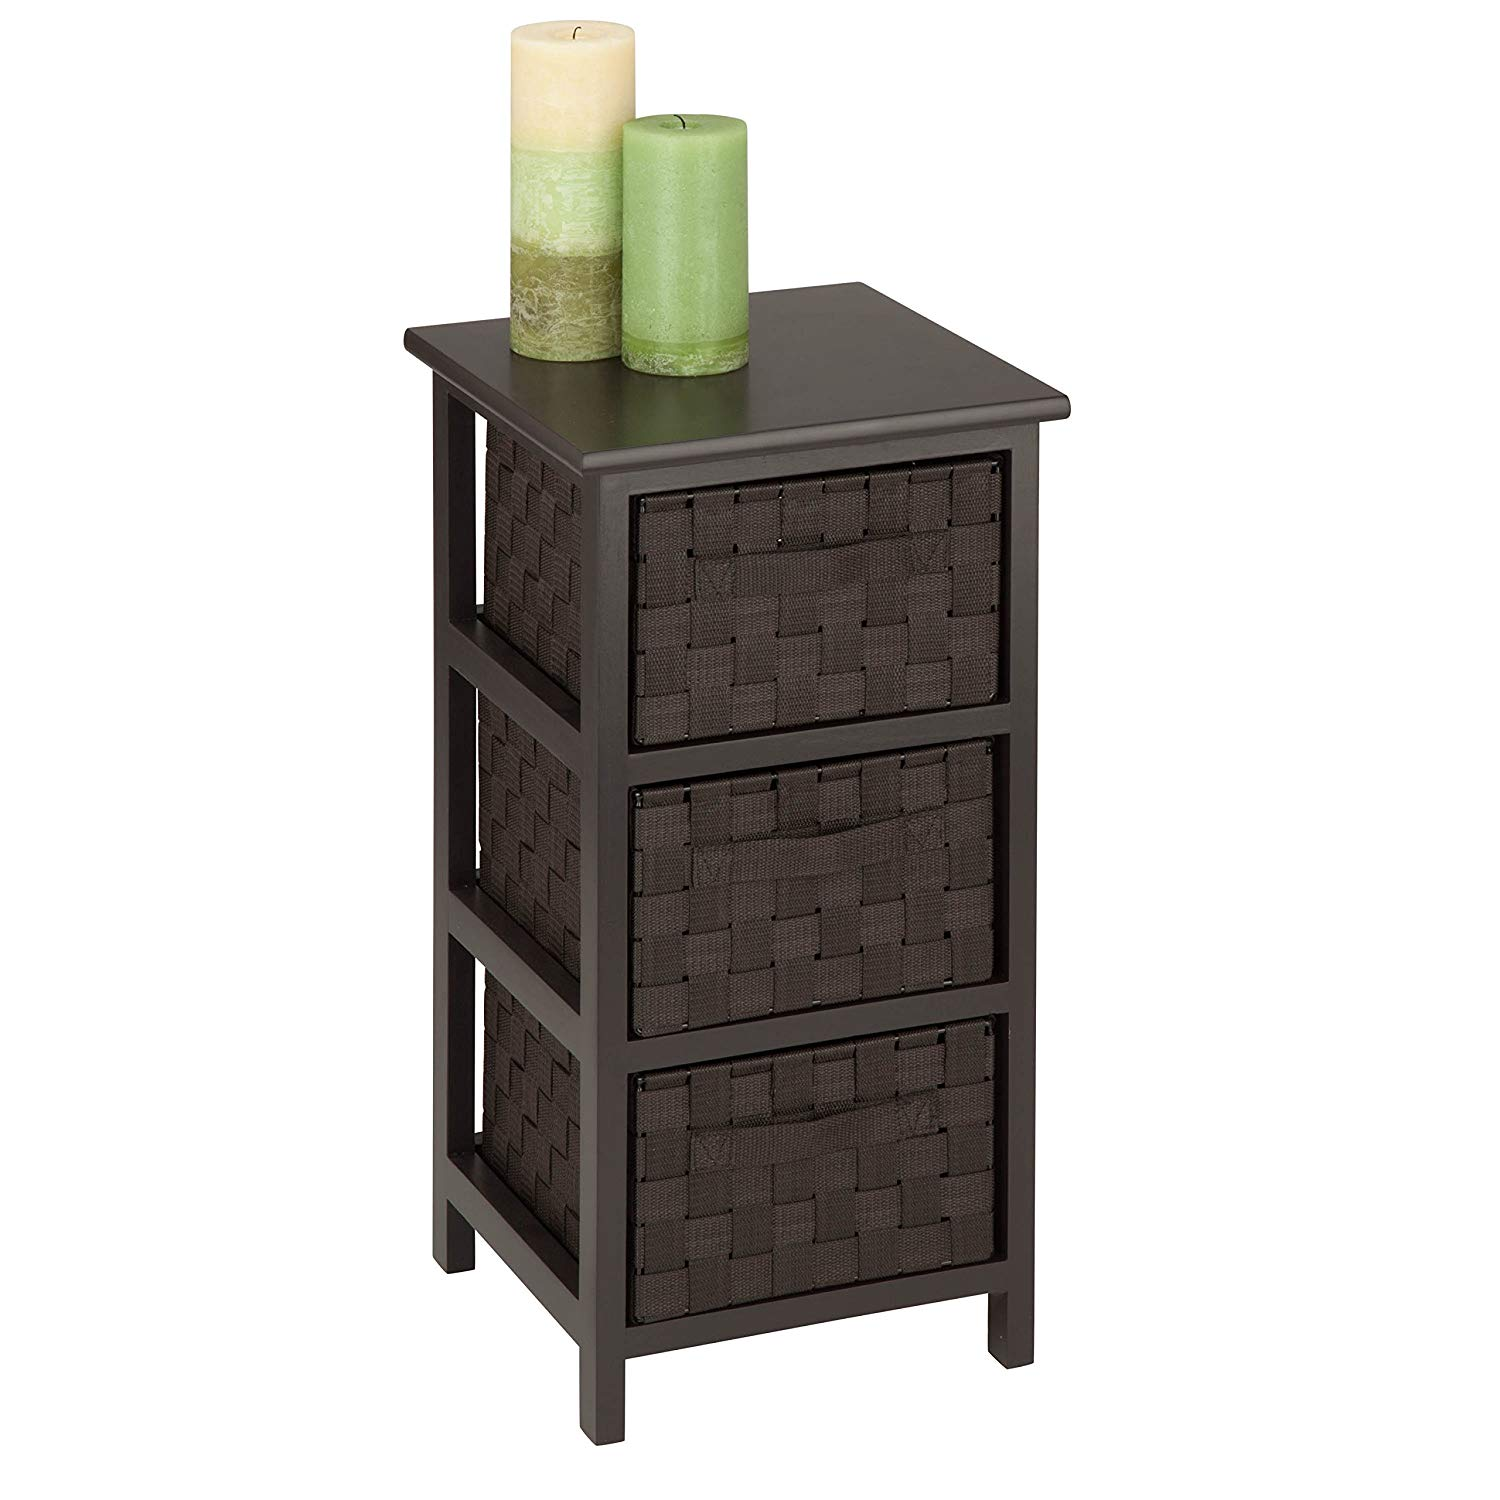 honey can ofc drawer natural wood frame atl three accent table storage organizer chest inch espresso brown kitchen dining mosaic top outdoor barn corner computer desk with hutch